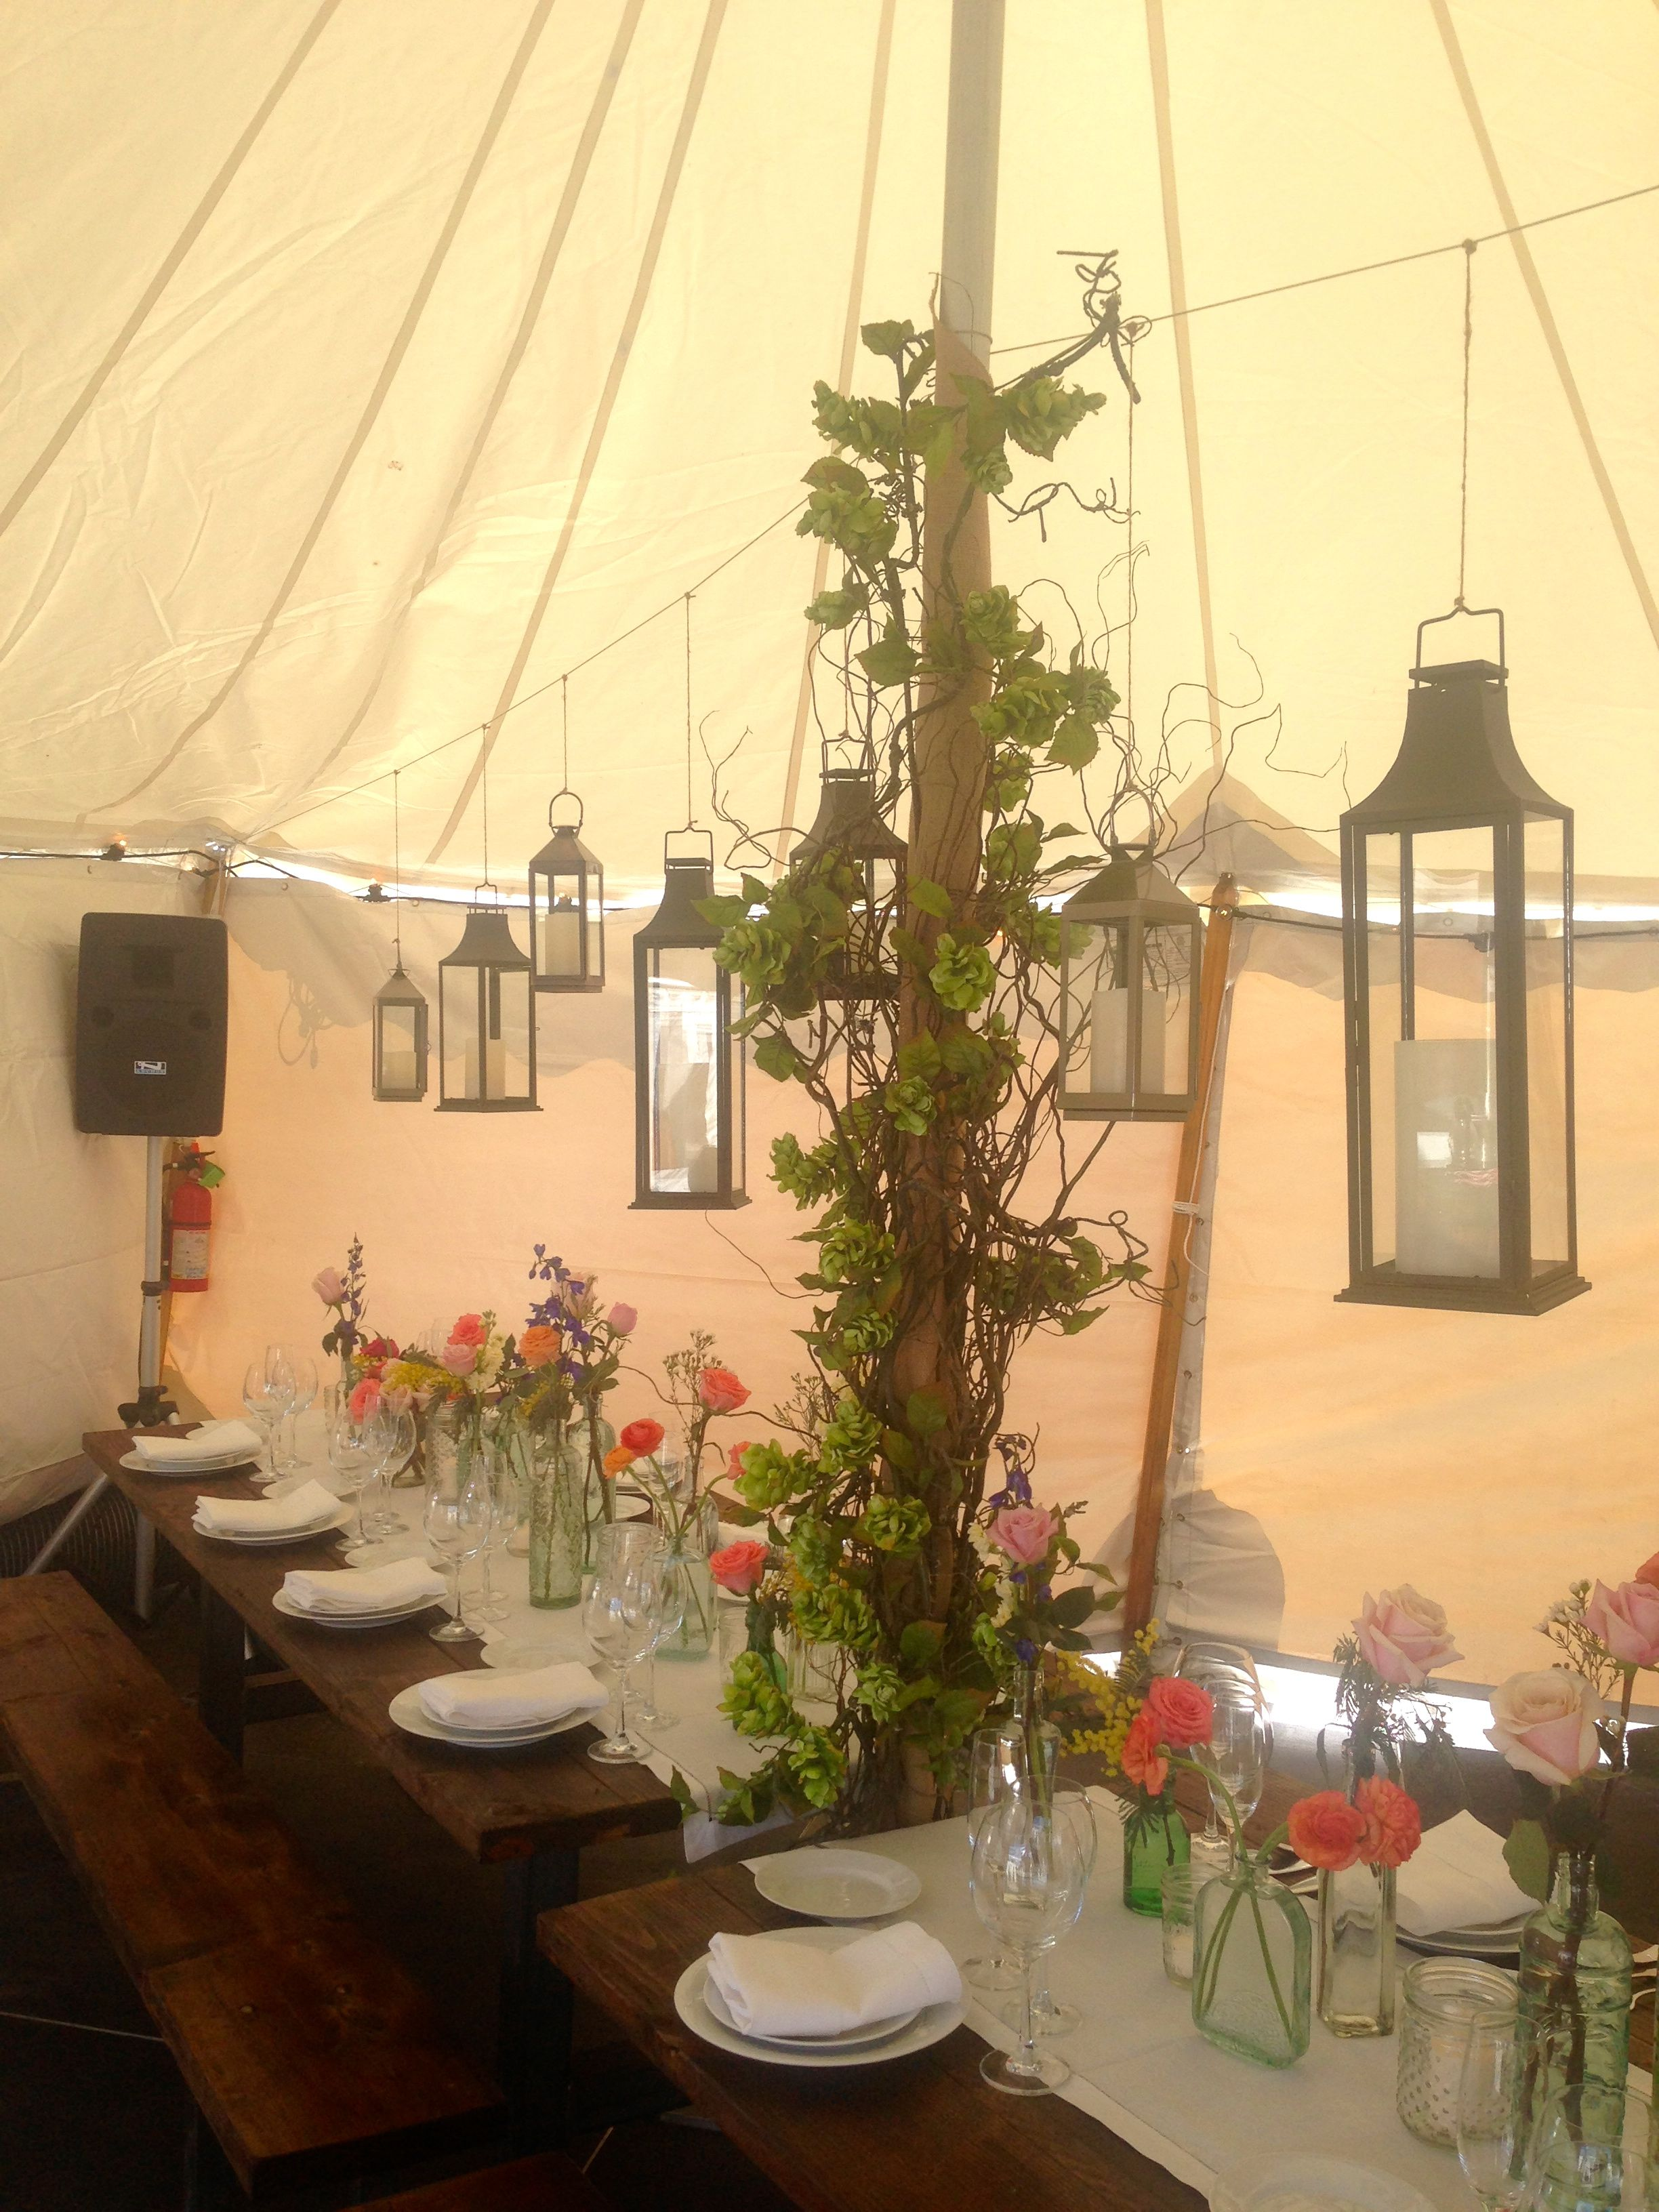 Wedding Pole Tent With Decorations From Our Open House Event In